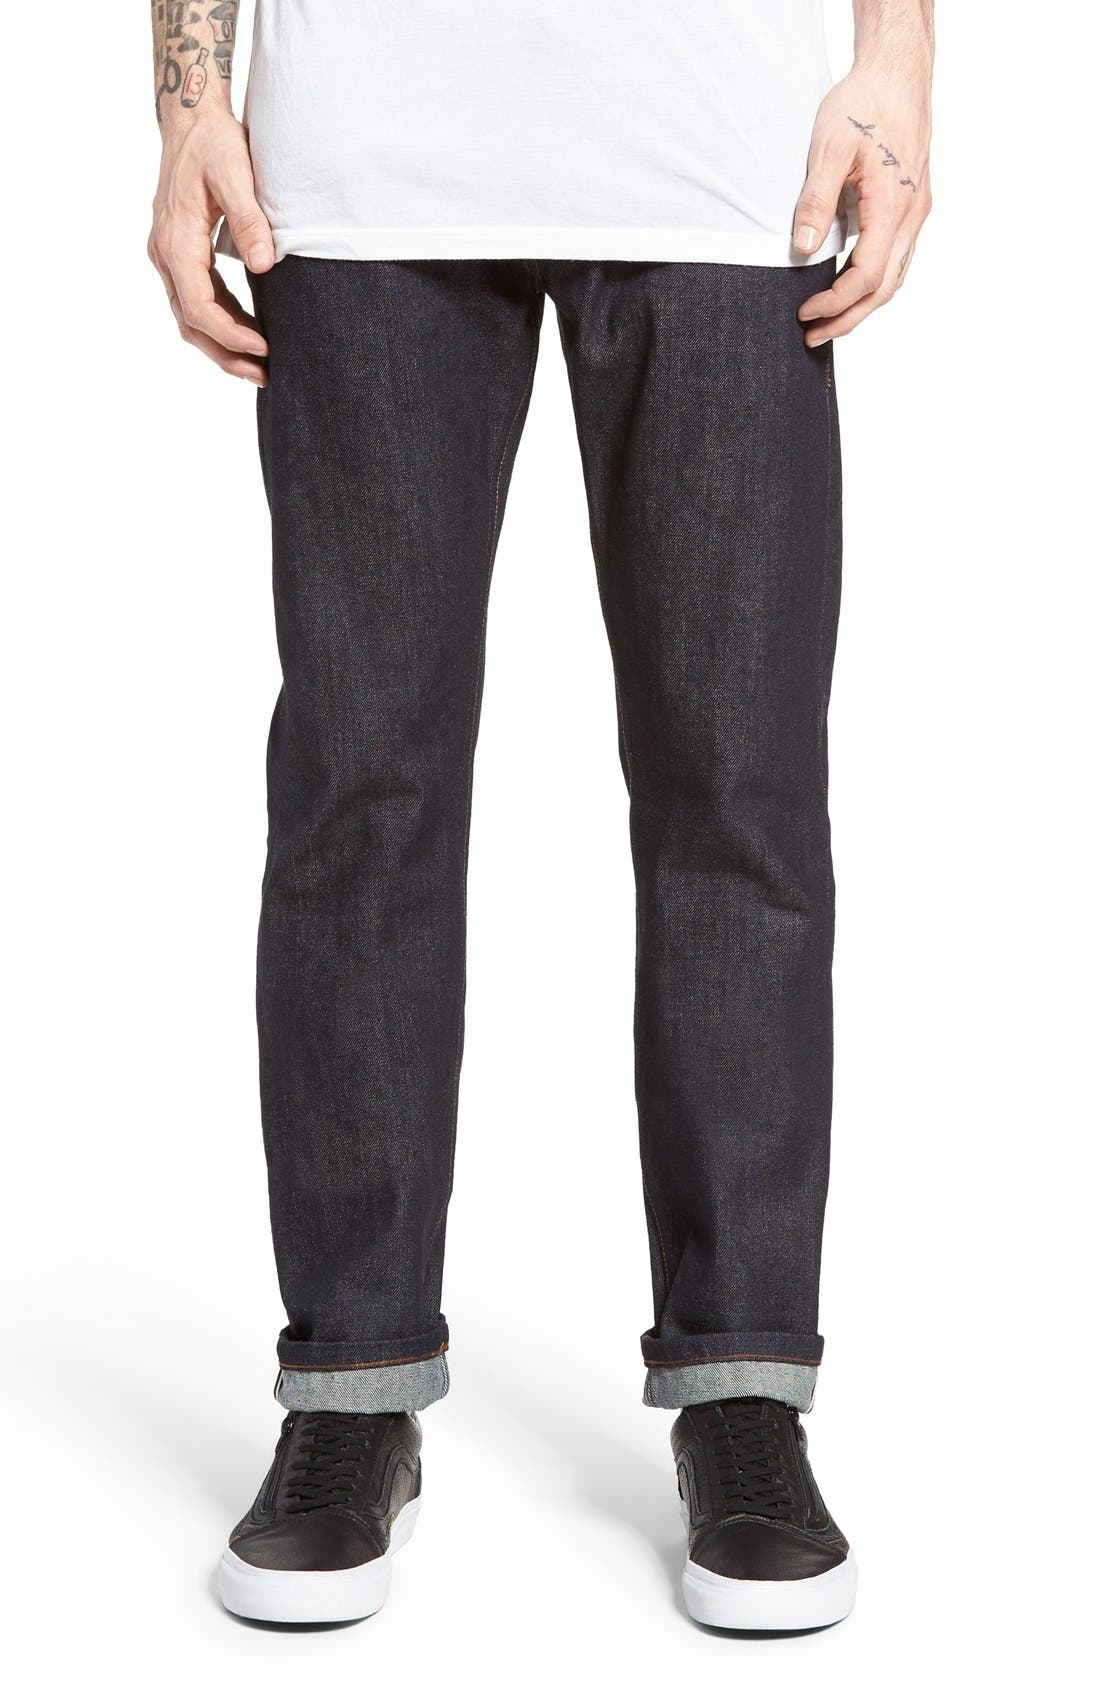 Alternate Image 1 Selected - The Unbranded Brand UB201 Tapered Fit Raw Selvedge Jeans